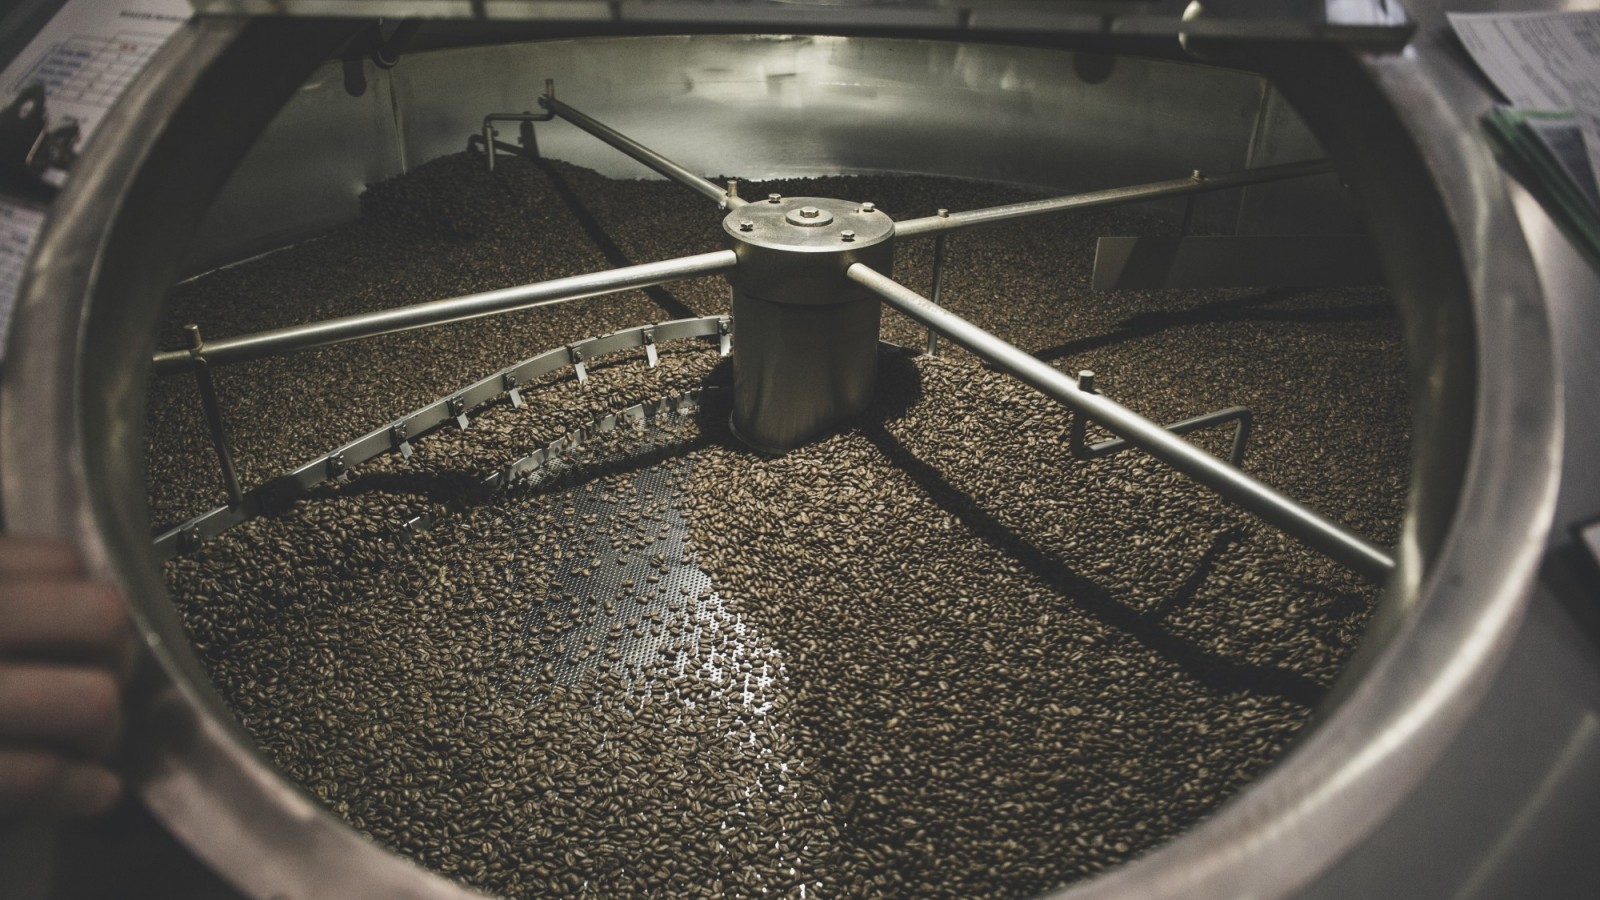 Coffee roasting, roasted coffee beans